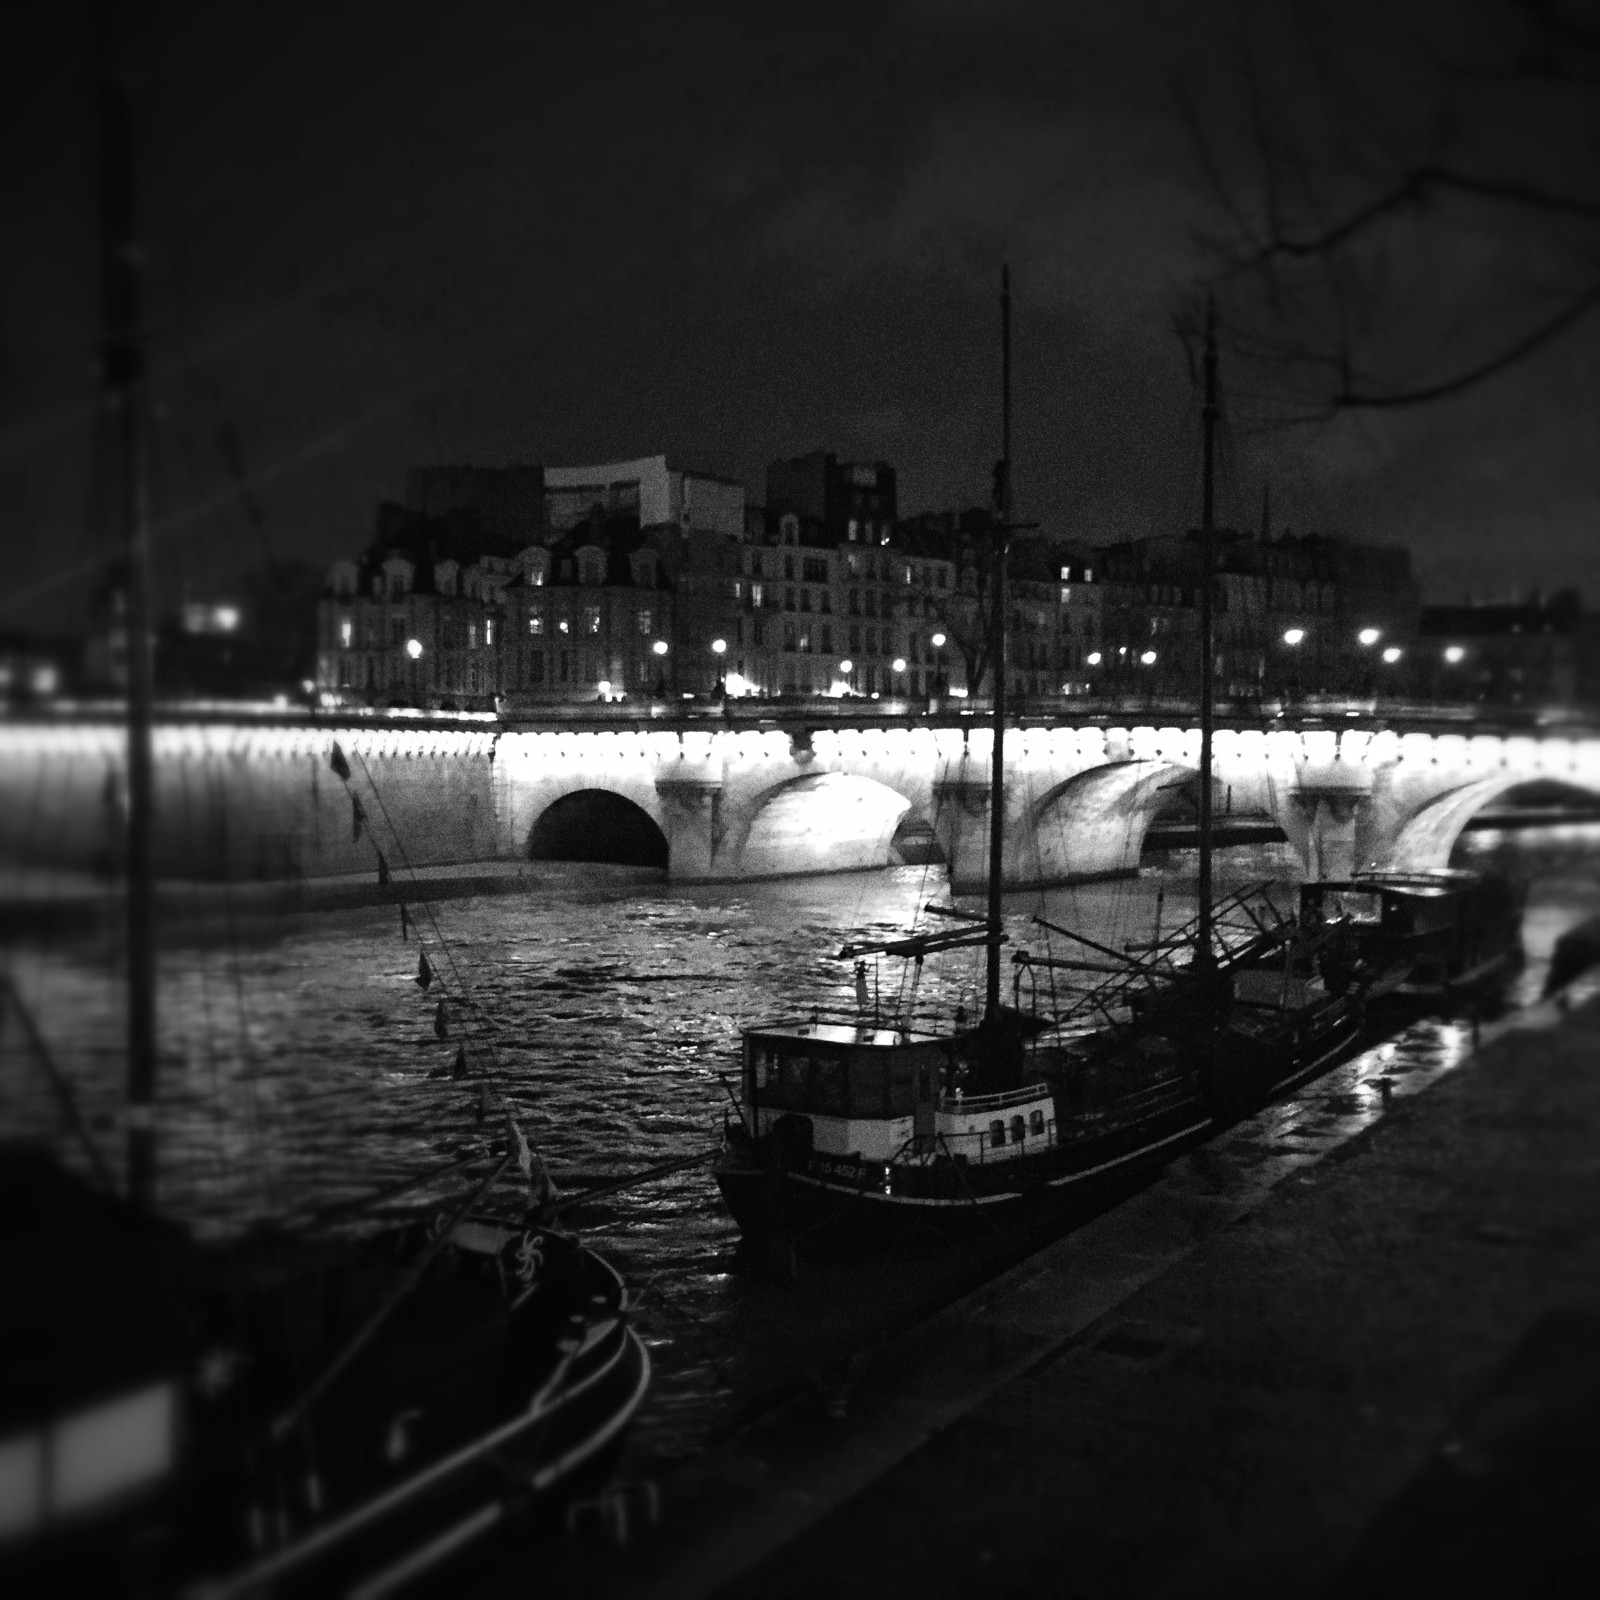 Ah, a romantic night on the Seine, bundled up and walking to a concert.